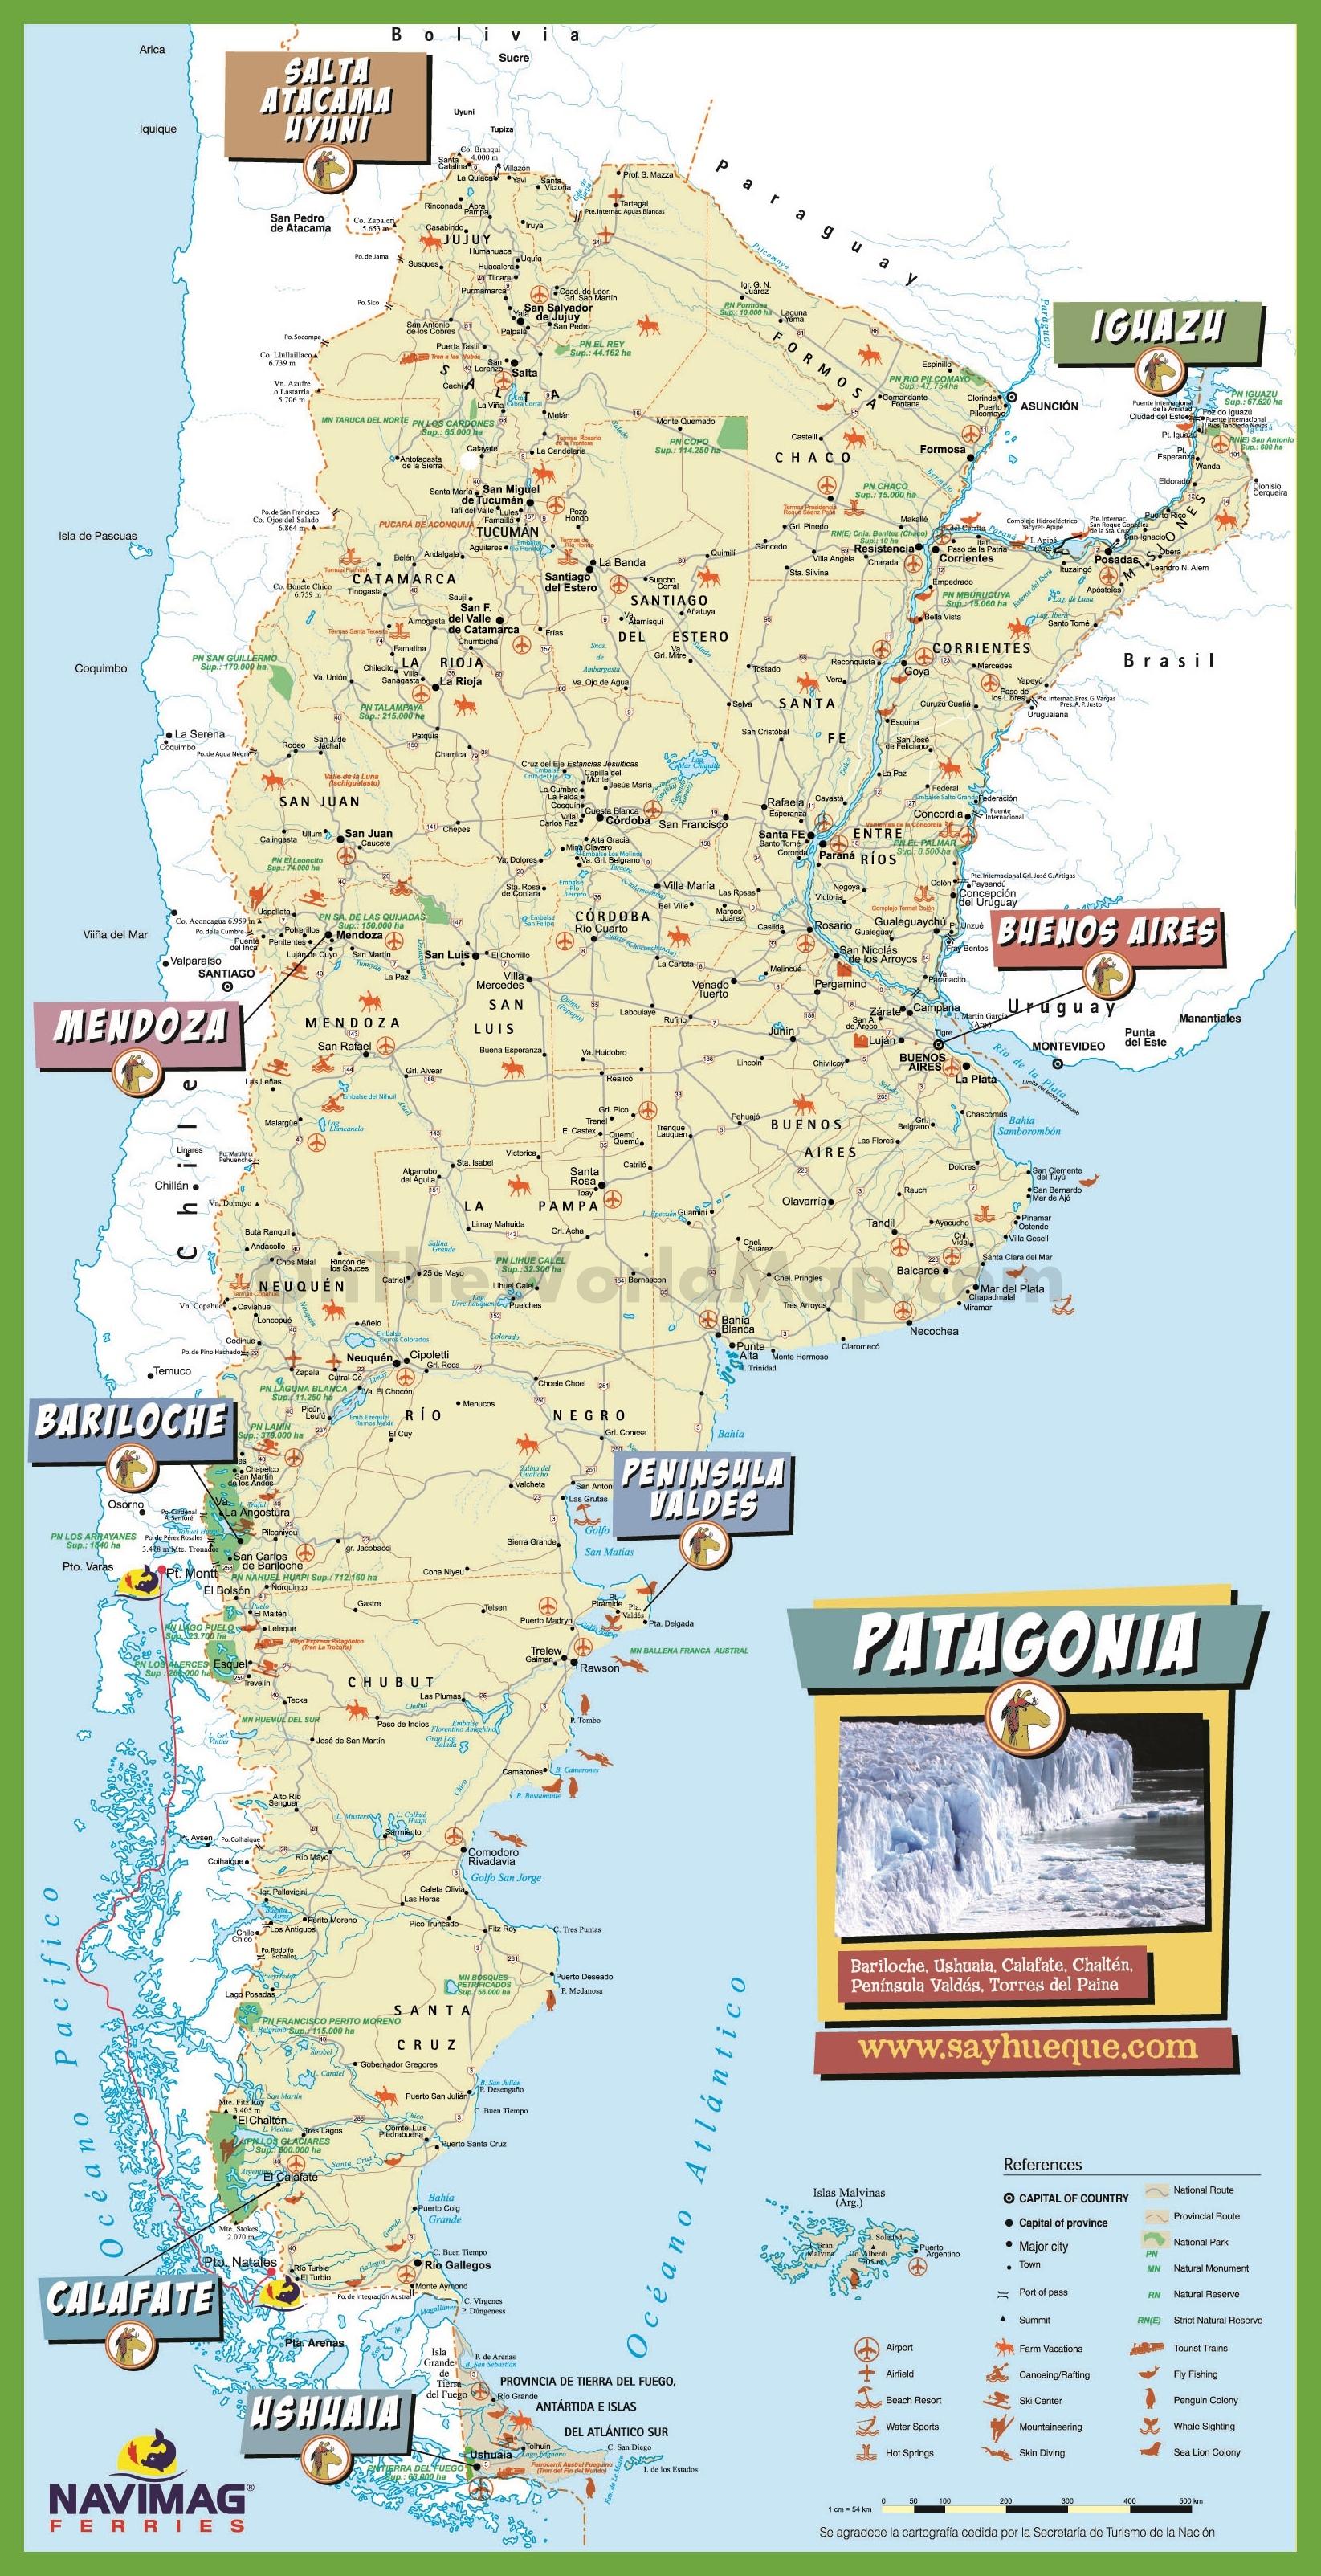 Argentina Maps – Santa Fe Tourist Map